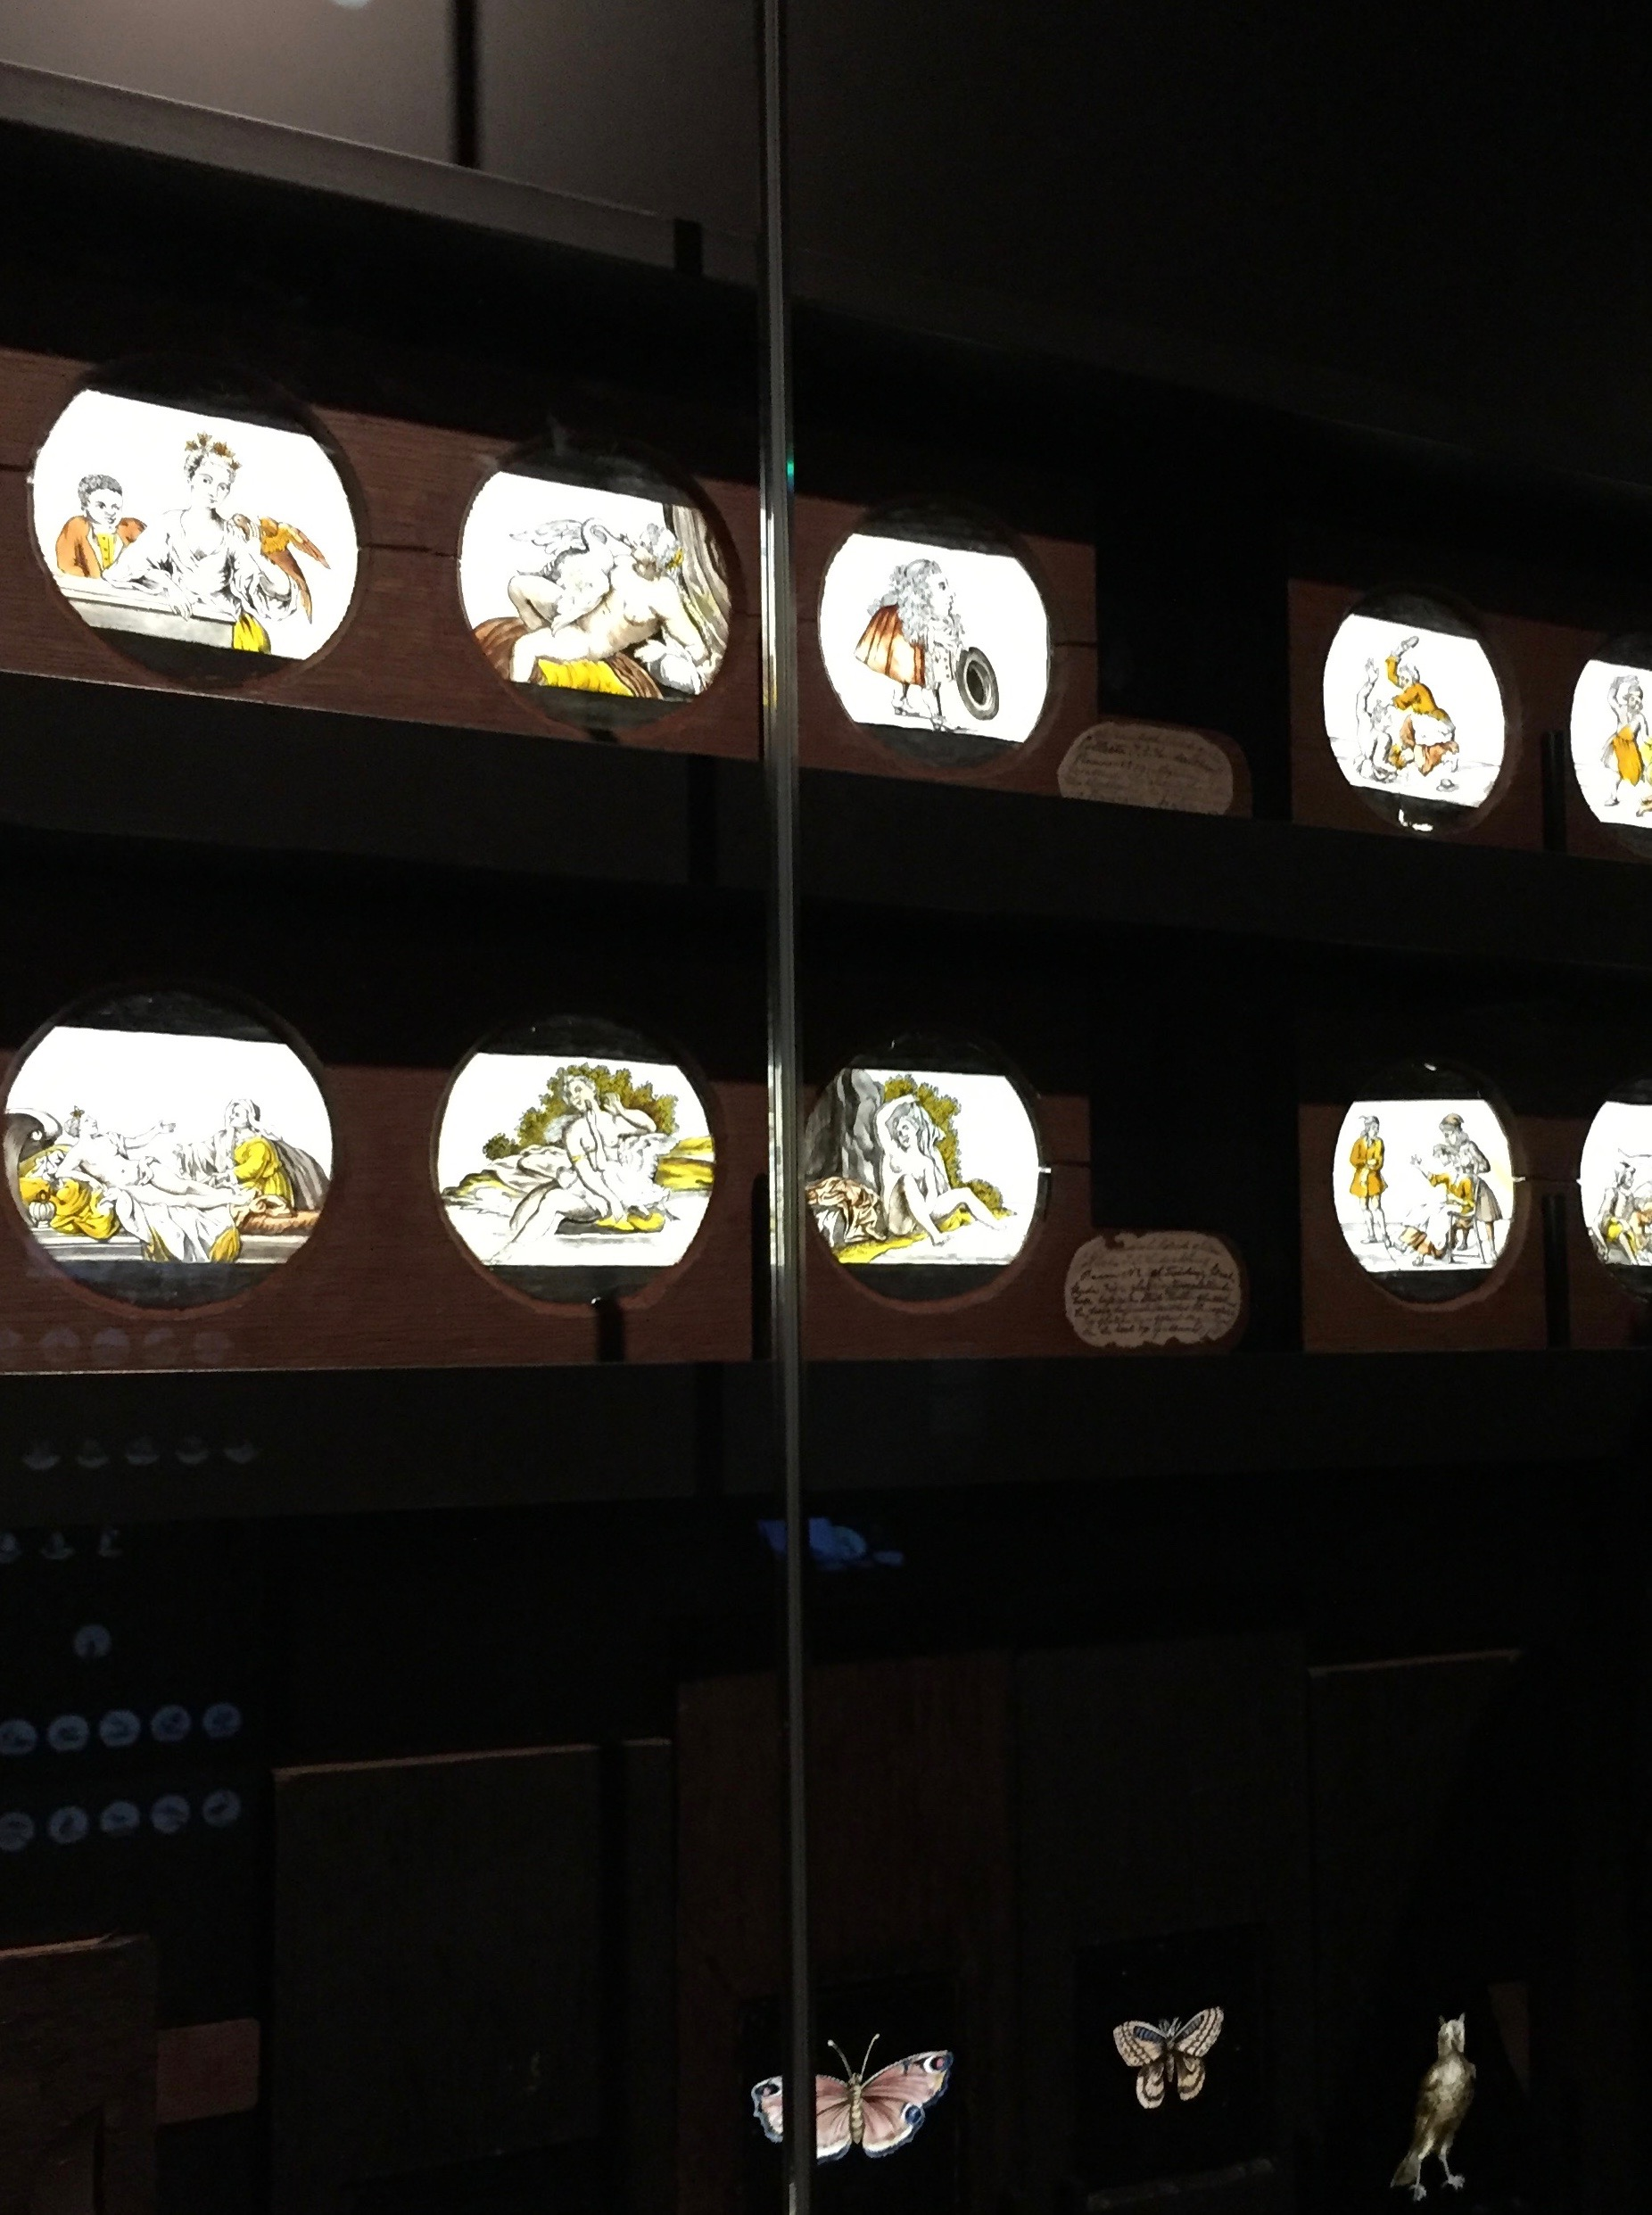 Eearly hand painted on glass picture slides in a glass case at the Rijksmuseum in Amsterdam